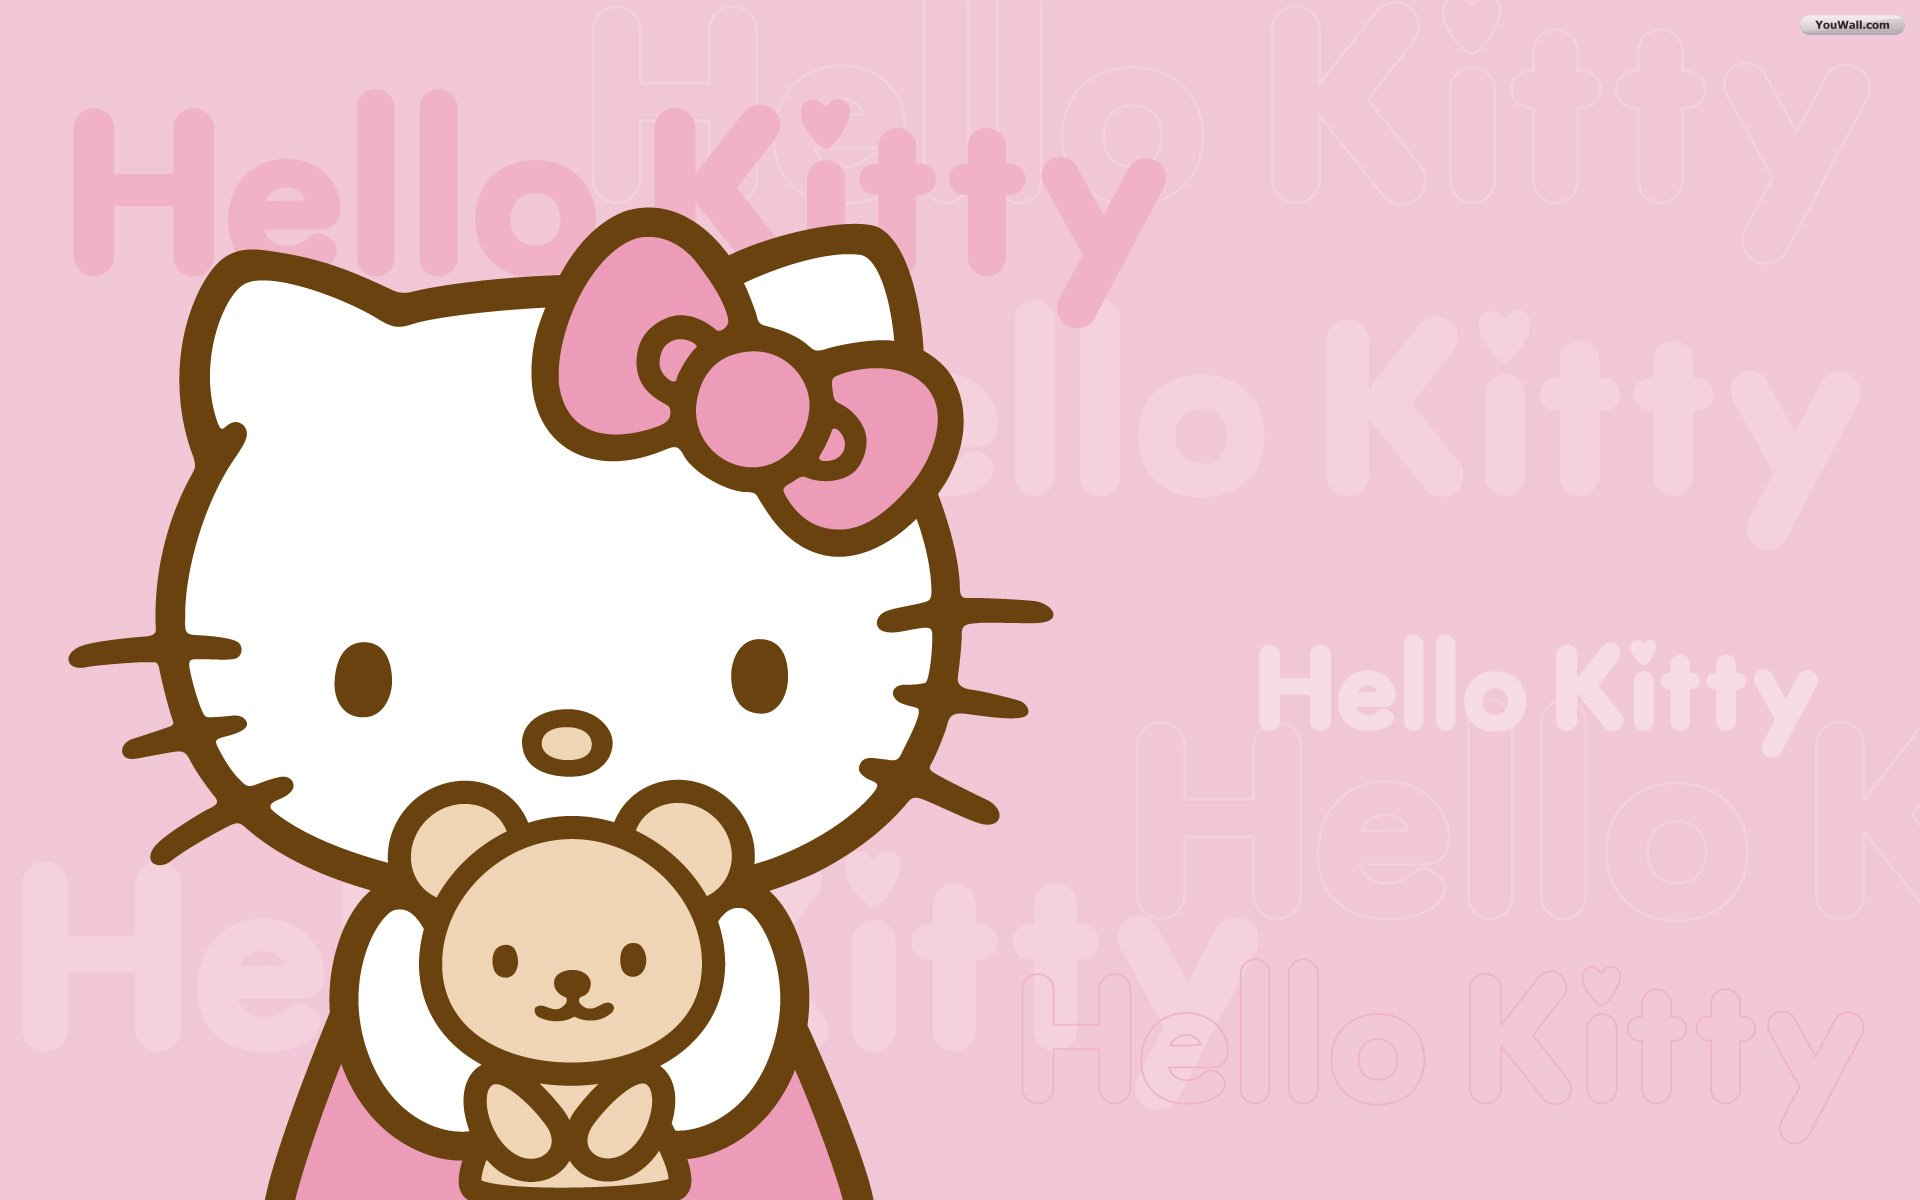 Simple Wallpaper Hello Kitty Car - pink-car-youwall-hello-kitty-free-124037  You Should Have_469891.jpg